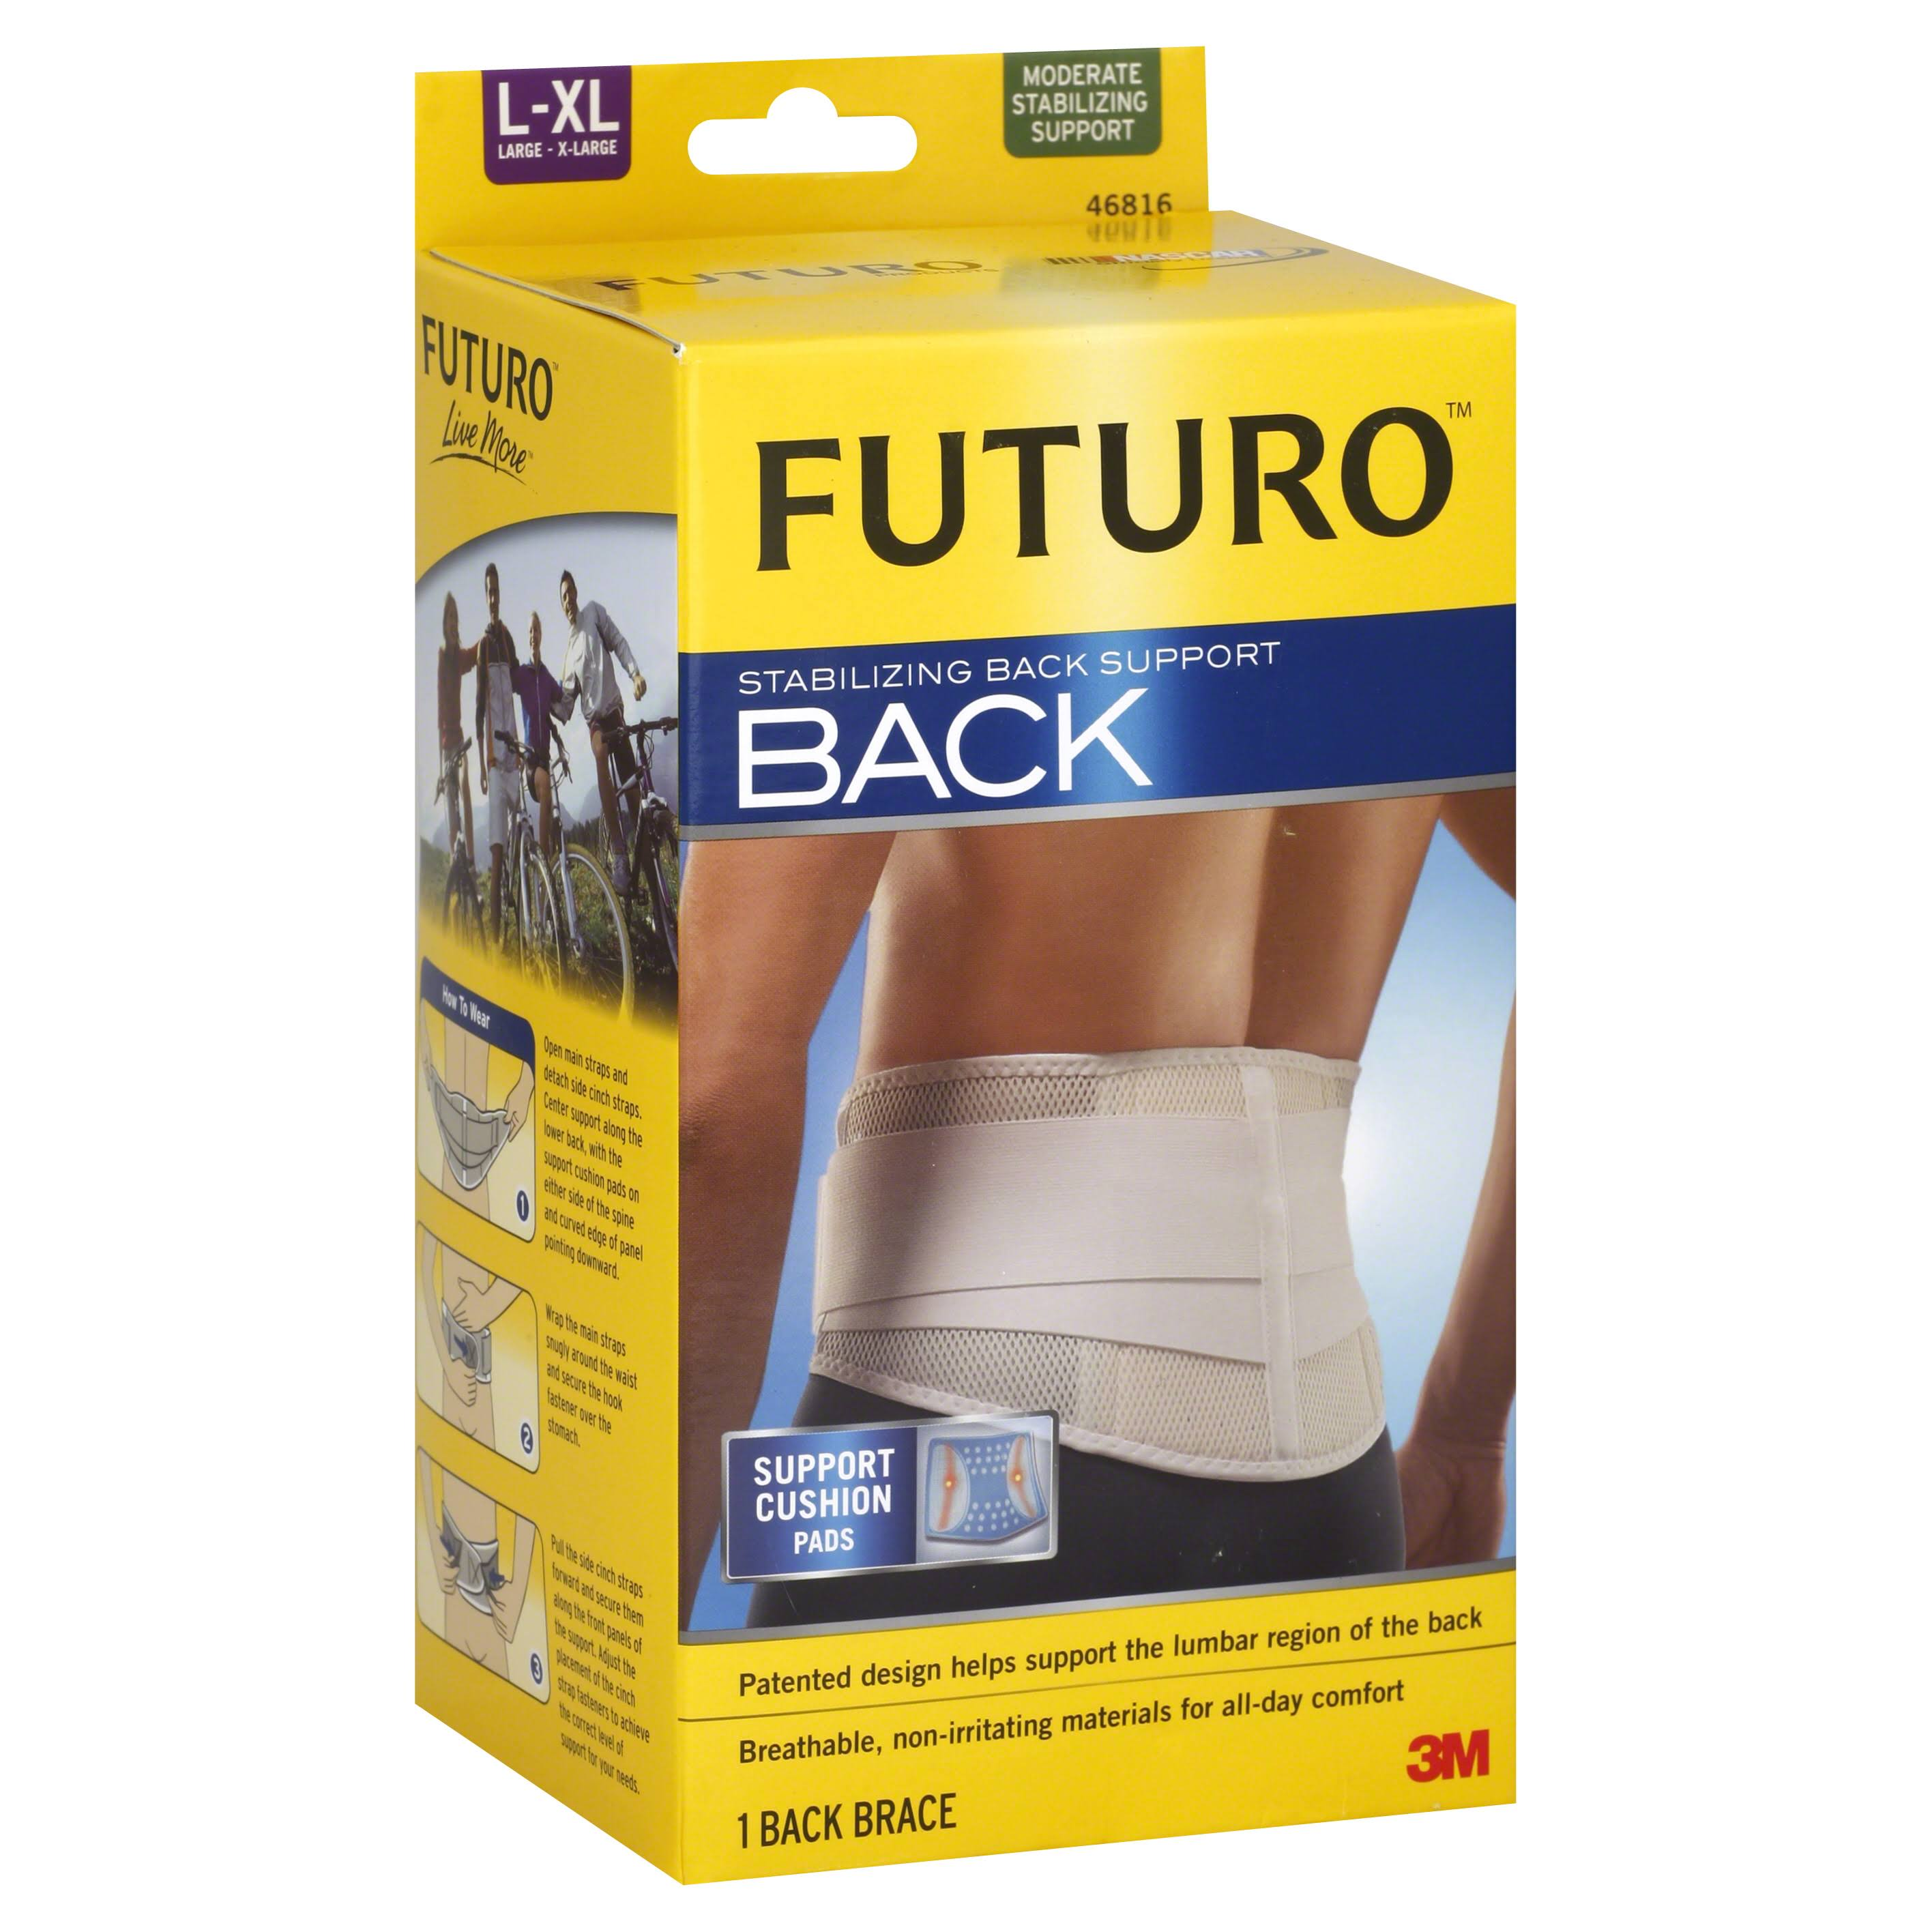 Futuro Back Stabilizing Back Support - White, Large & X-Larg